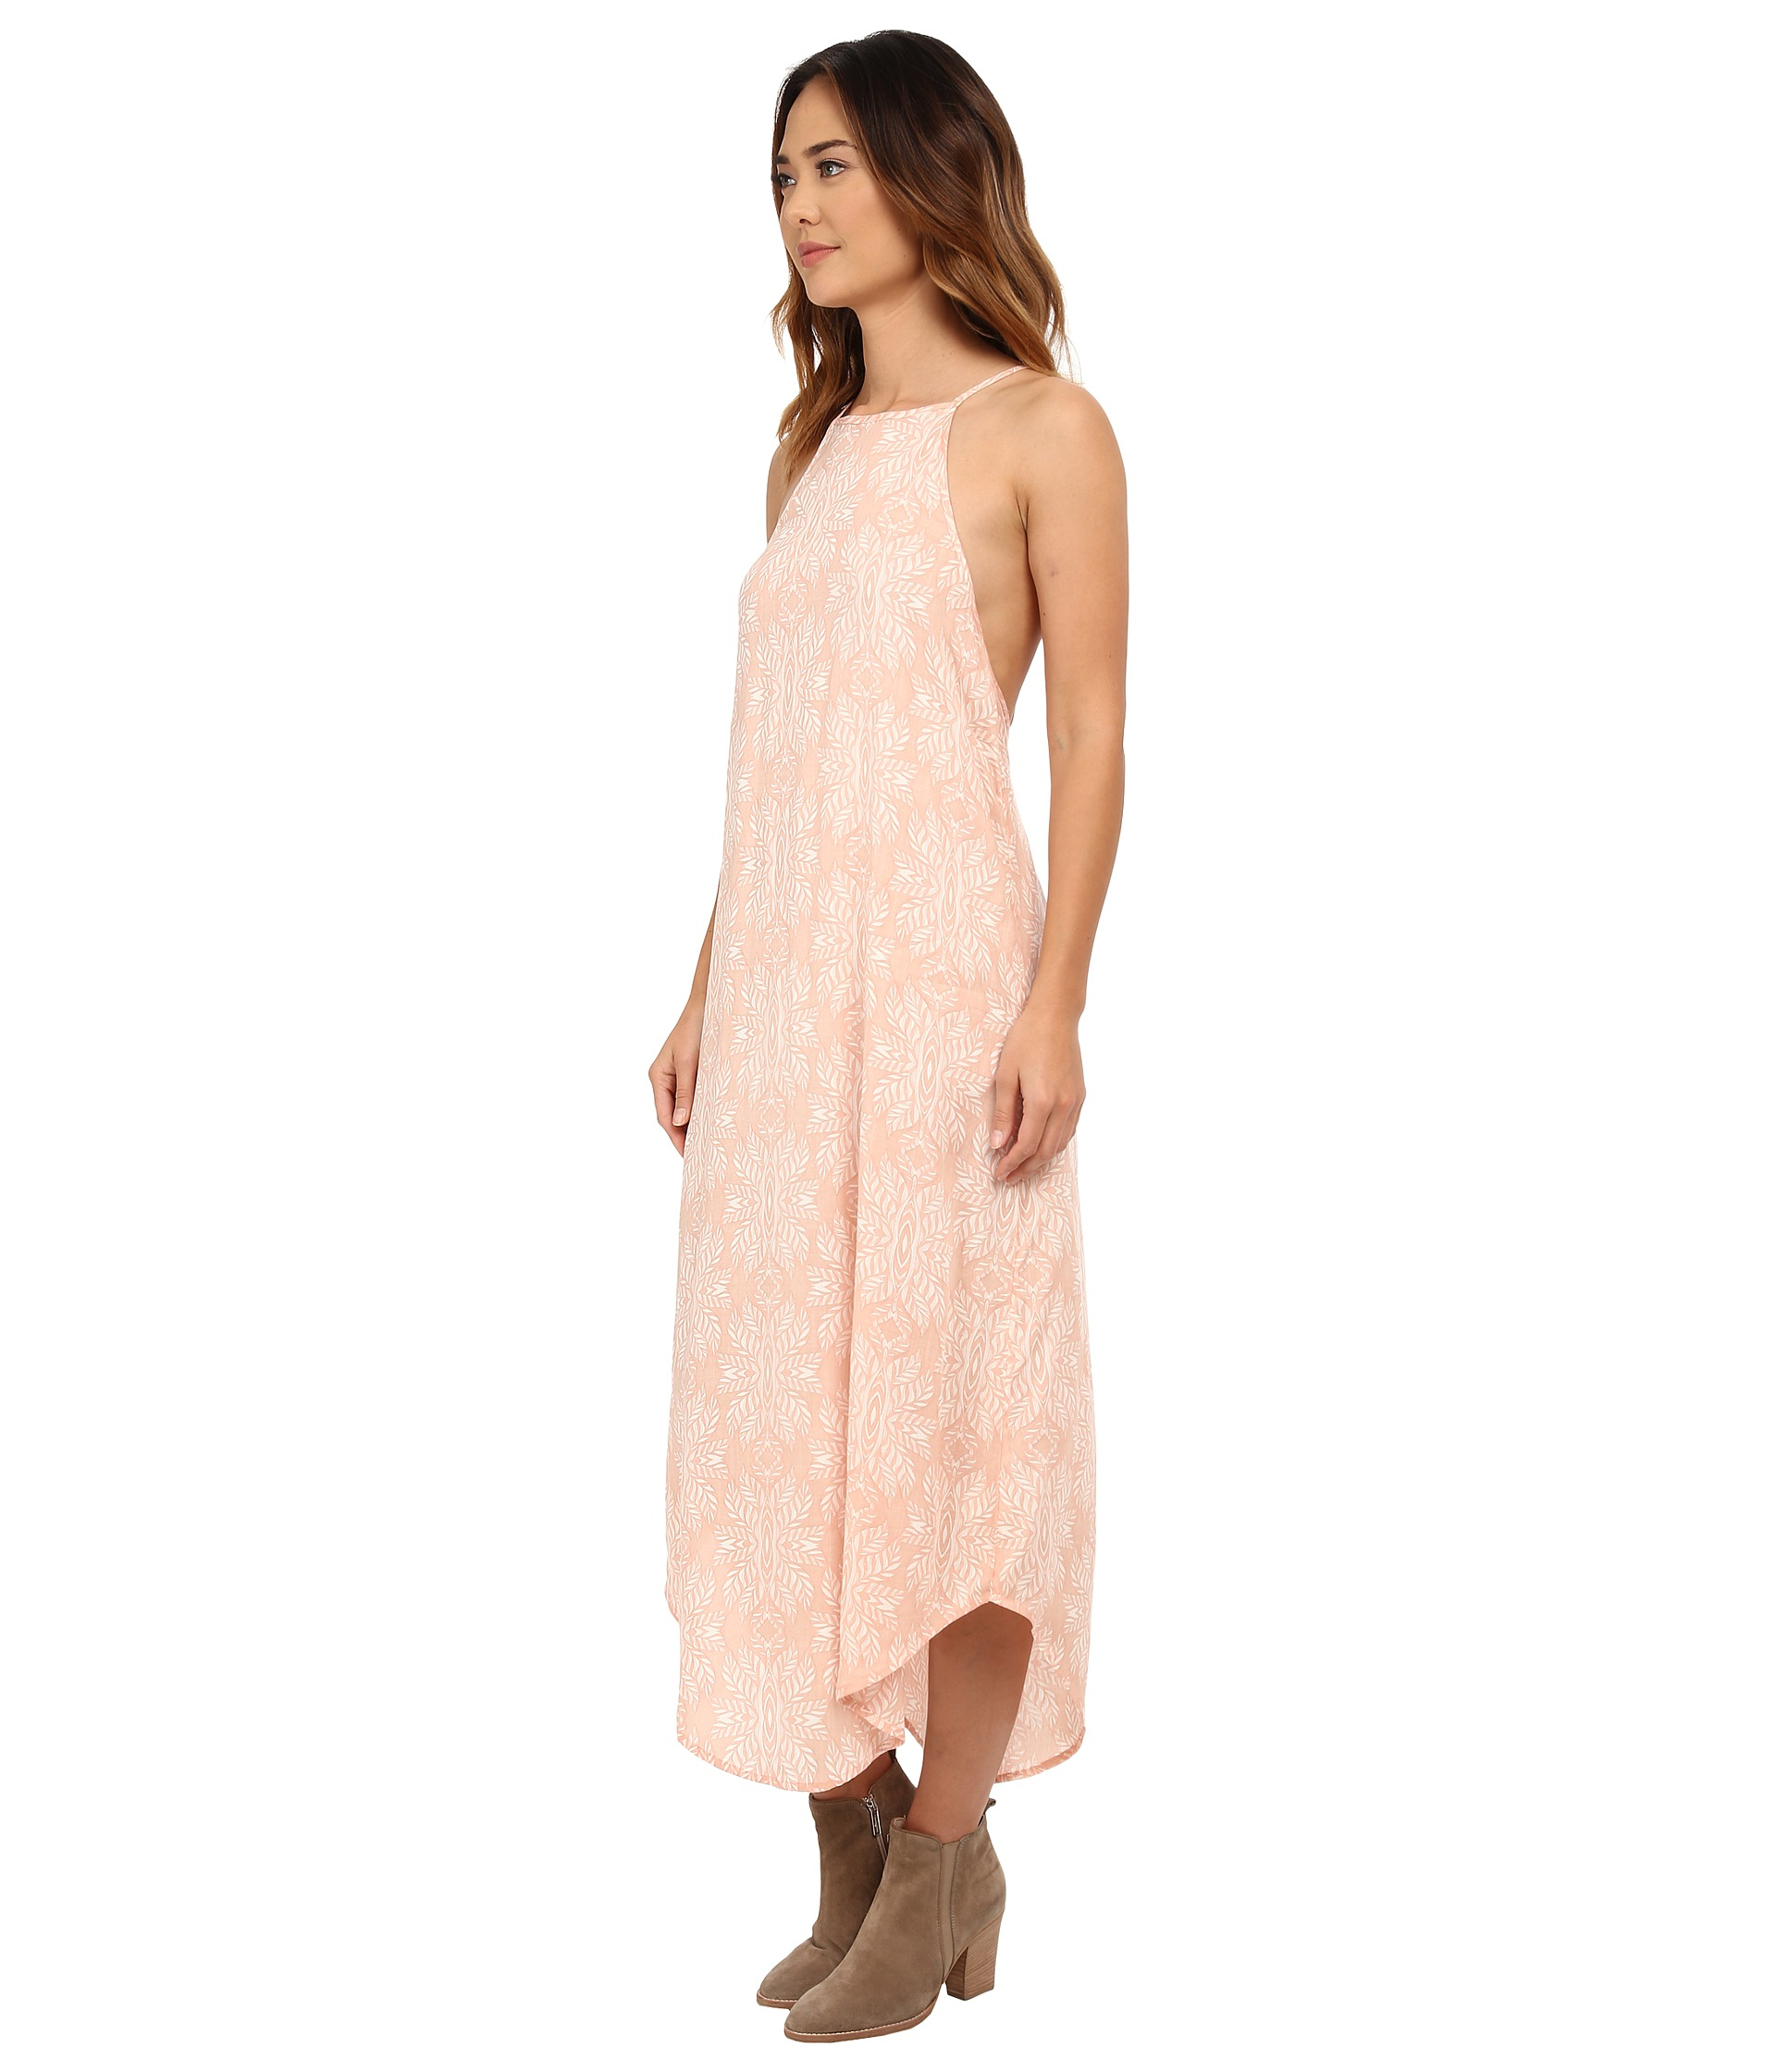 Rip curl Woodland Maxi Dress in Pink | Lyst